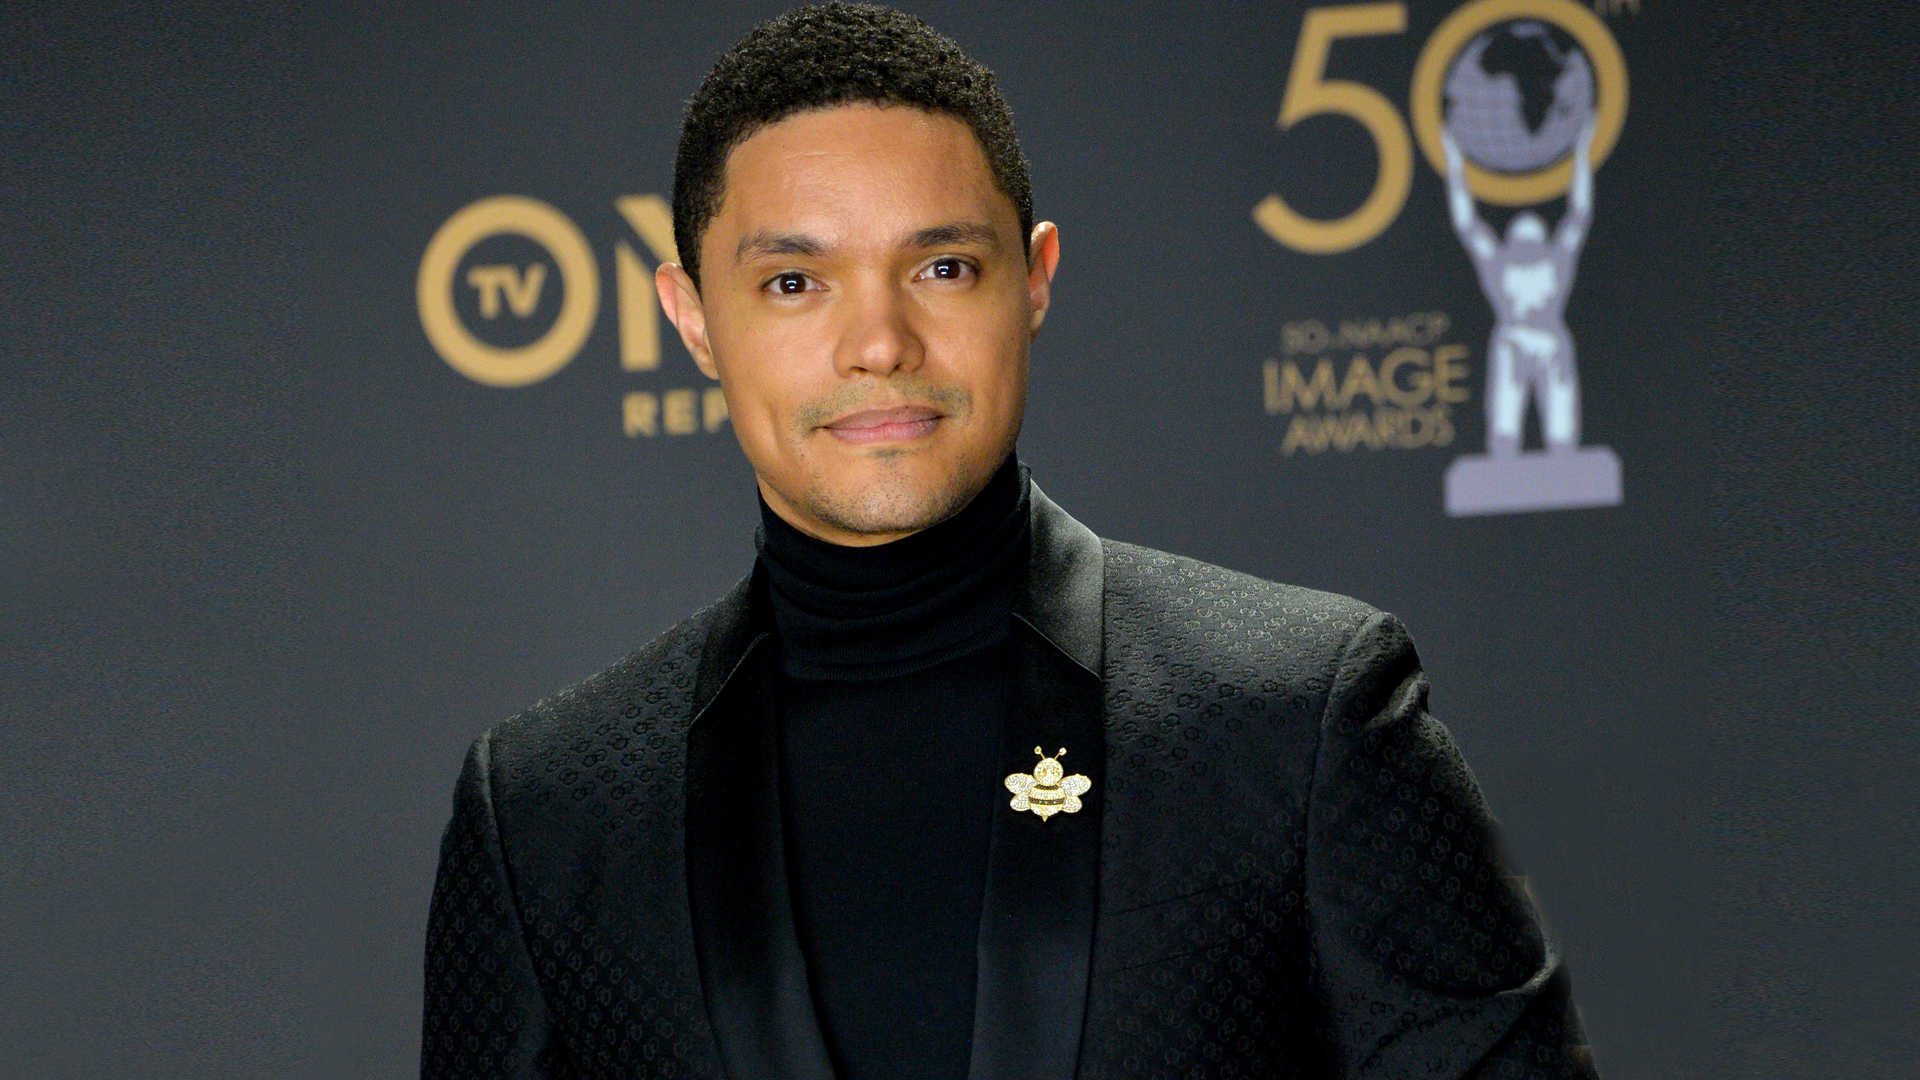 Trevor Noah Phone Number, Email, Fan Mail, Address, Biography, Agent, Manager, Mailing address, Contact Info, Mailing Addresses